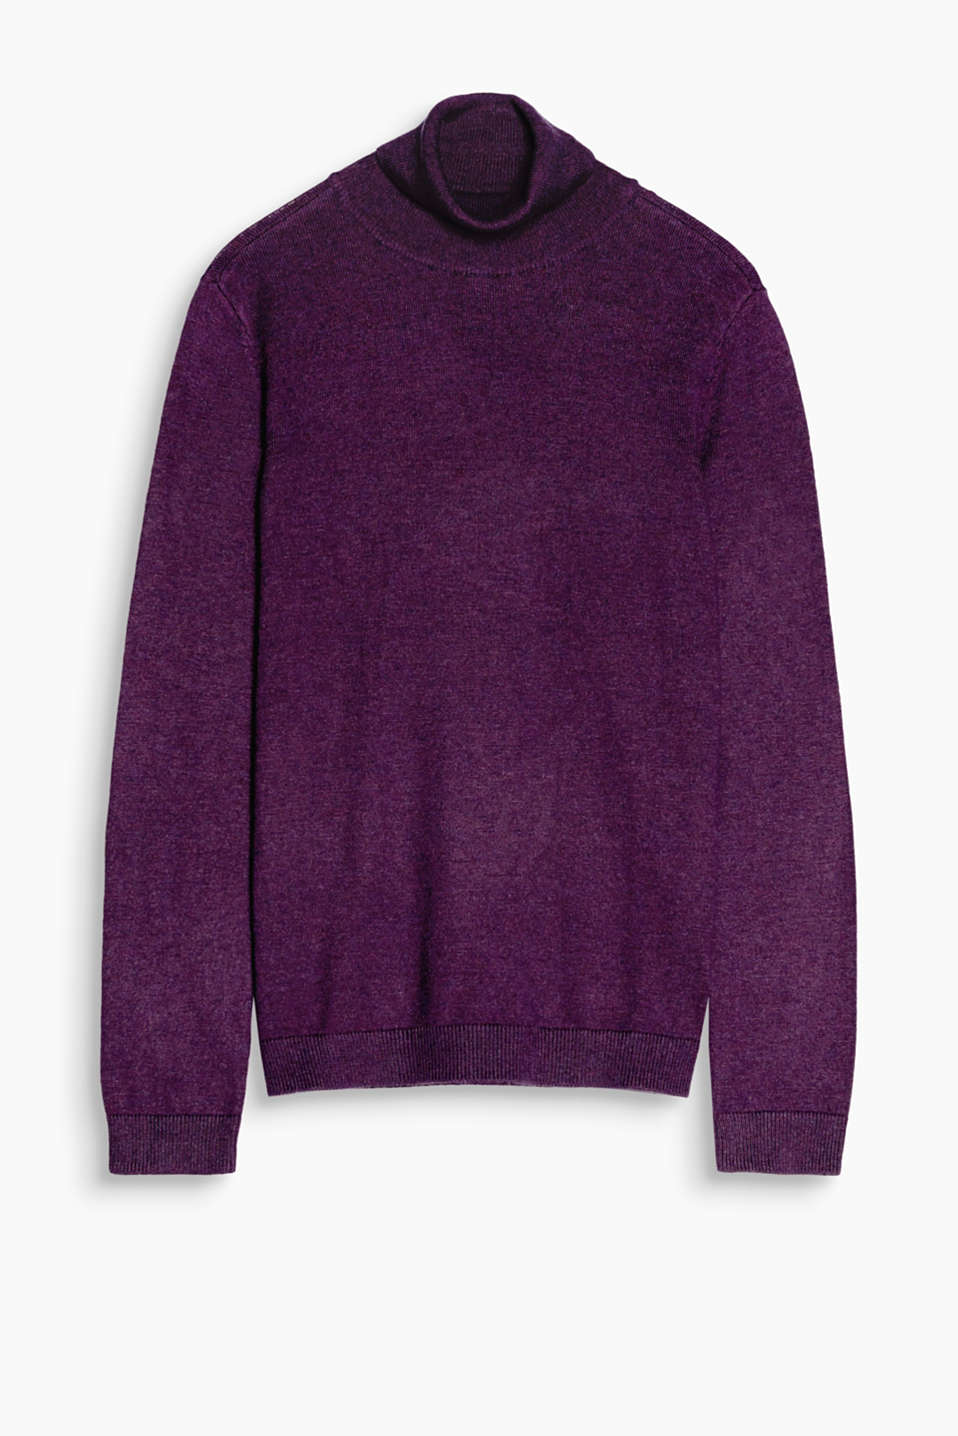 Soft and silky: a beautiful polo neck jumper with stunning hem slits has to be an autumn must-have!